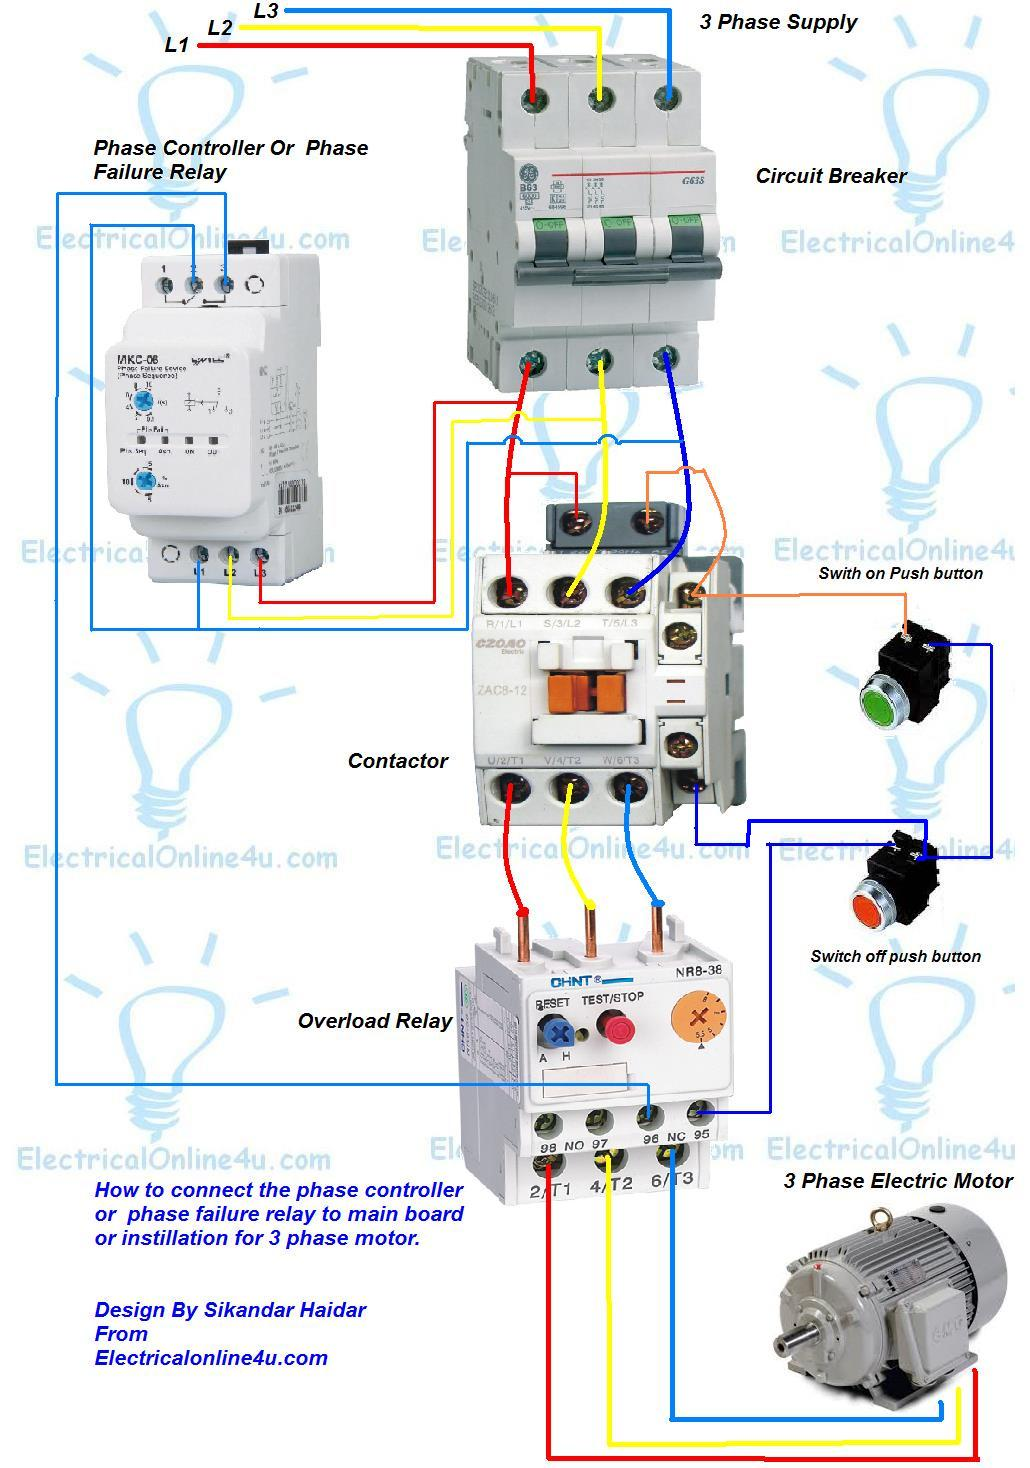 Phase%2Bfailure%2Brelay%2B %2Bphase%2Bcontroller%2Binstilaion%2Bin%2B3%2Bphase%2BMain%2Bboard%2Bor%2Bfor%2B3%2Bphase%2Bmotor wiring diagram contactor reverse polarity relay diagram \u2022 wiring Motor Contactor Wiring Diagram at eliteediting.co